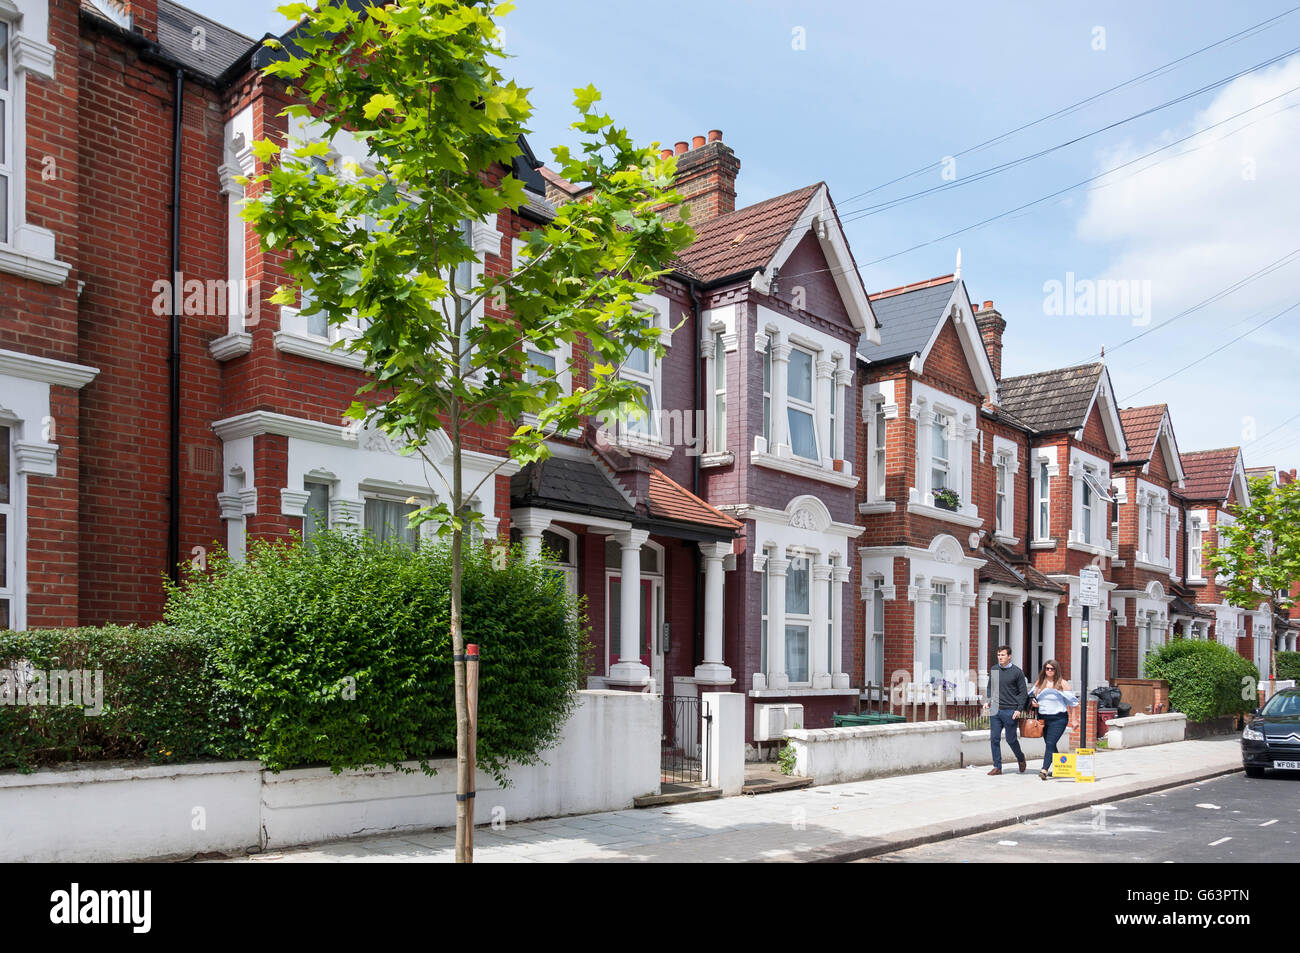 Terraced houses on Stapleton Road, Tooting Bec, London Borough of Wandsworth, Greater London, England, United Kingdom - Stock Image